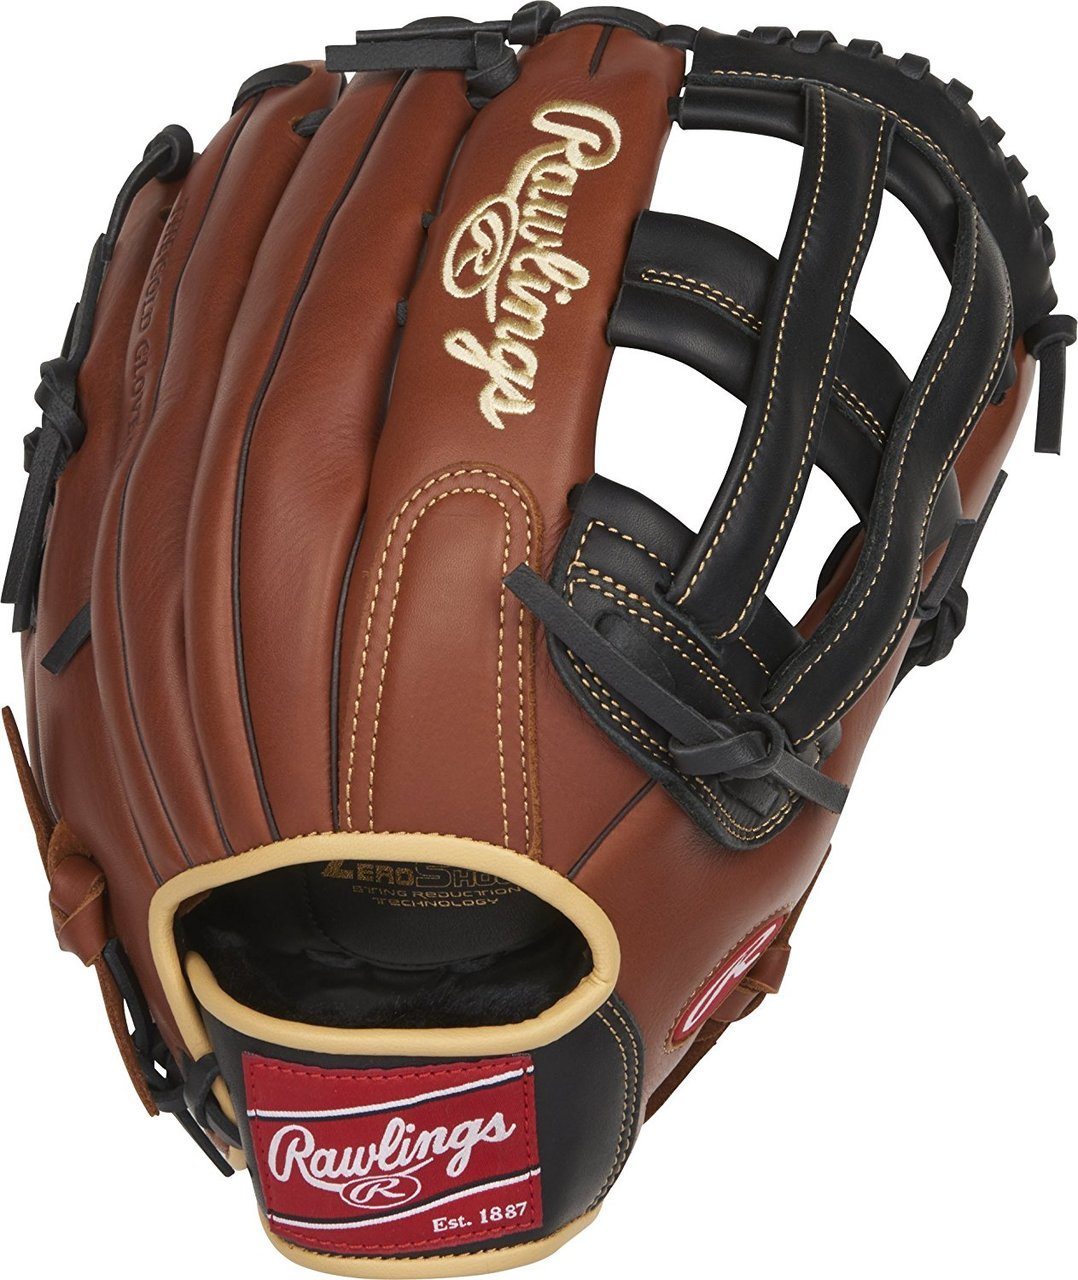 rawlings-sandlot-series-s1275h-baseball-glove-12-75-right-hand-throw S1275H-RightHandThrow  083321369186 The Sandlot Series gloves feature an oiled pull-up leather that gives